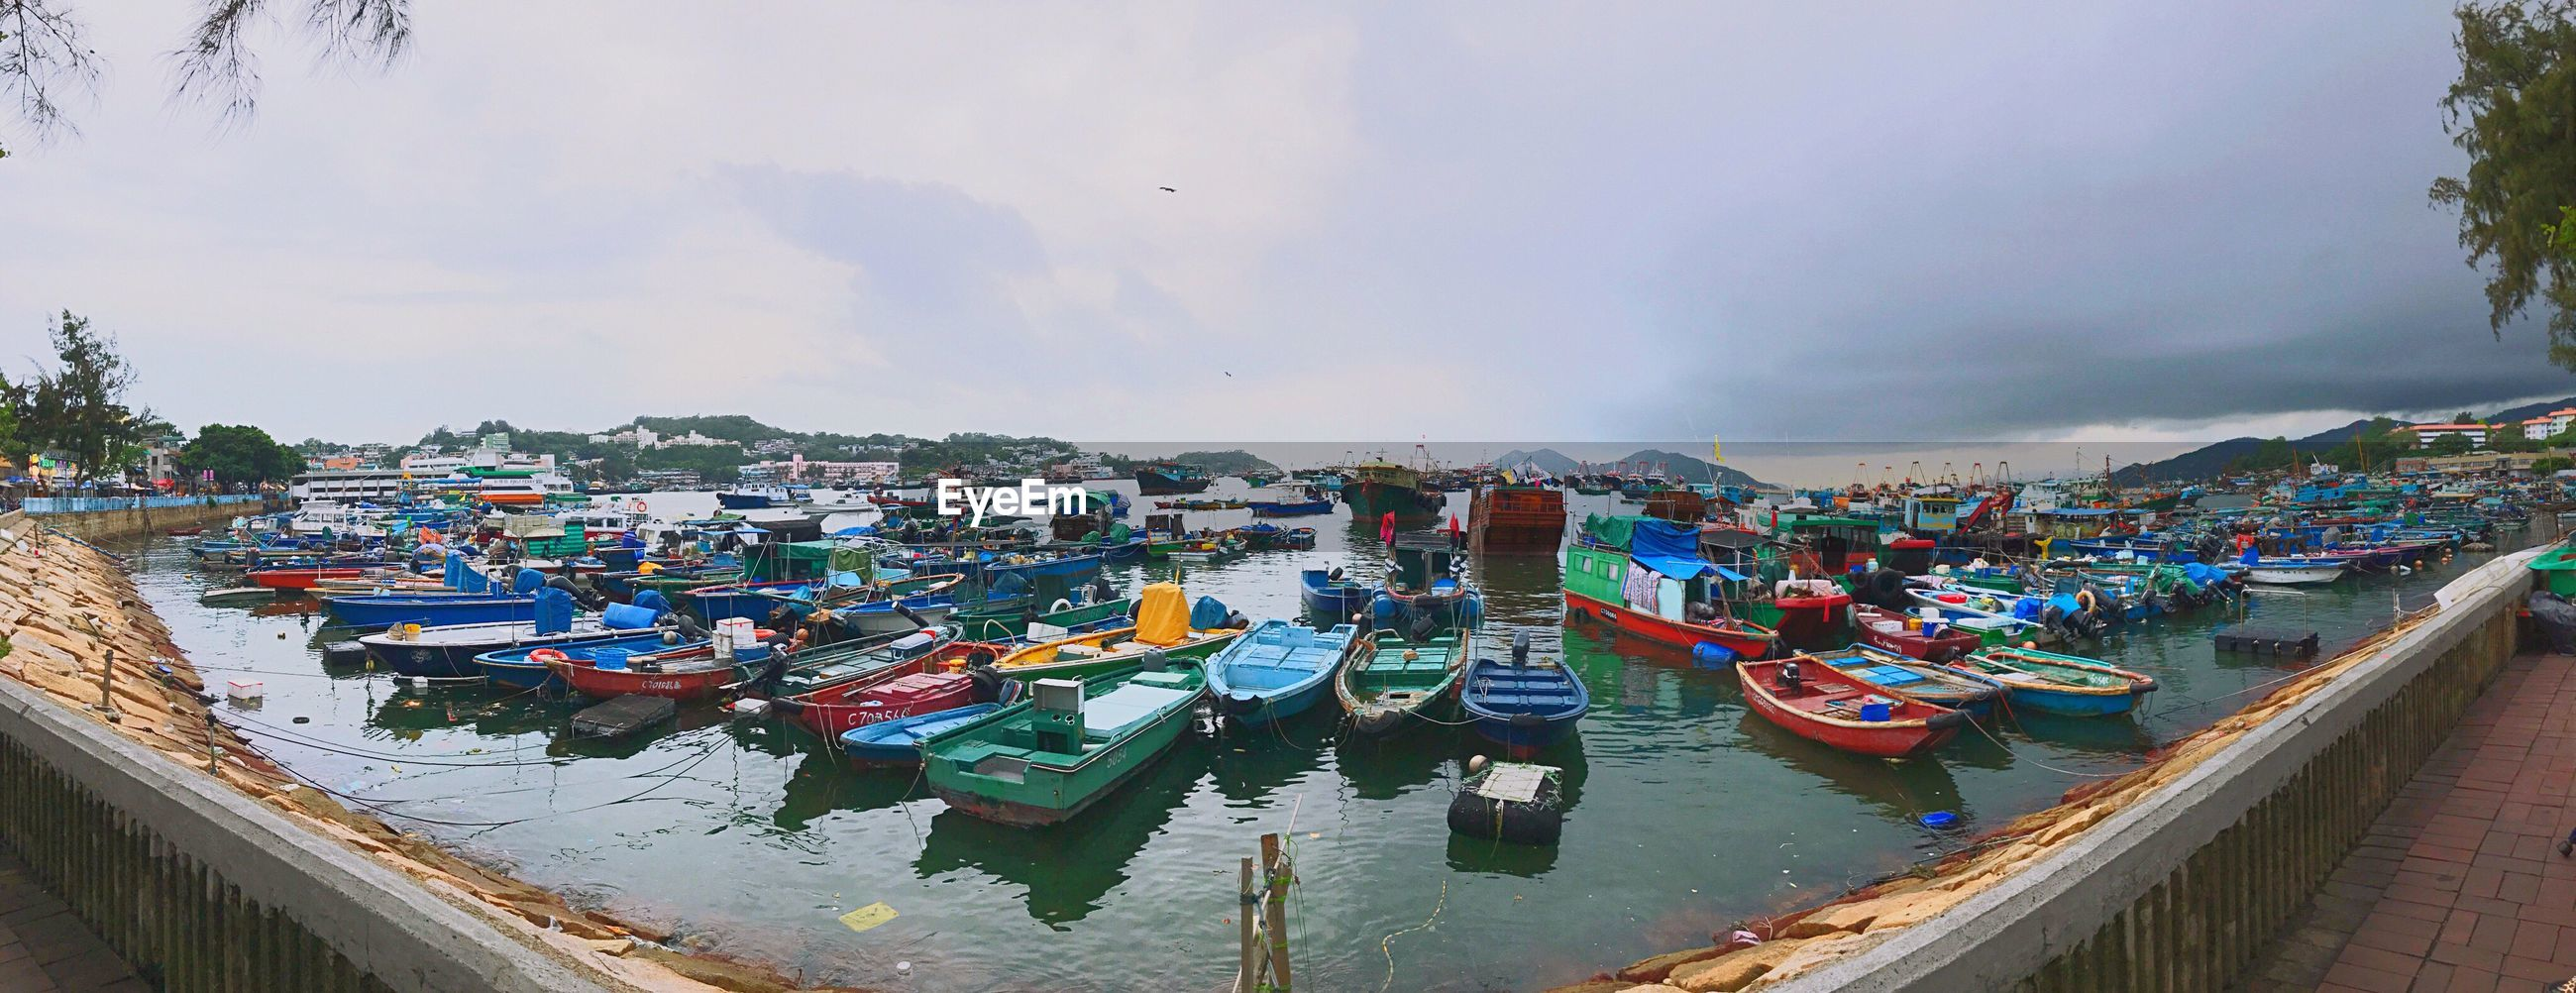 Panoramic image of boats moored at harbor in city